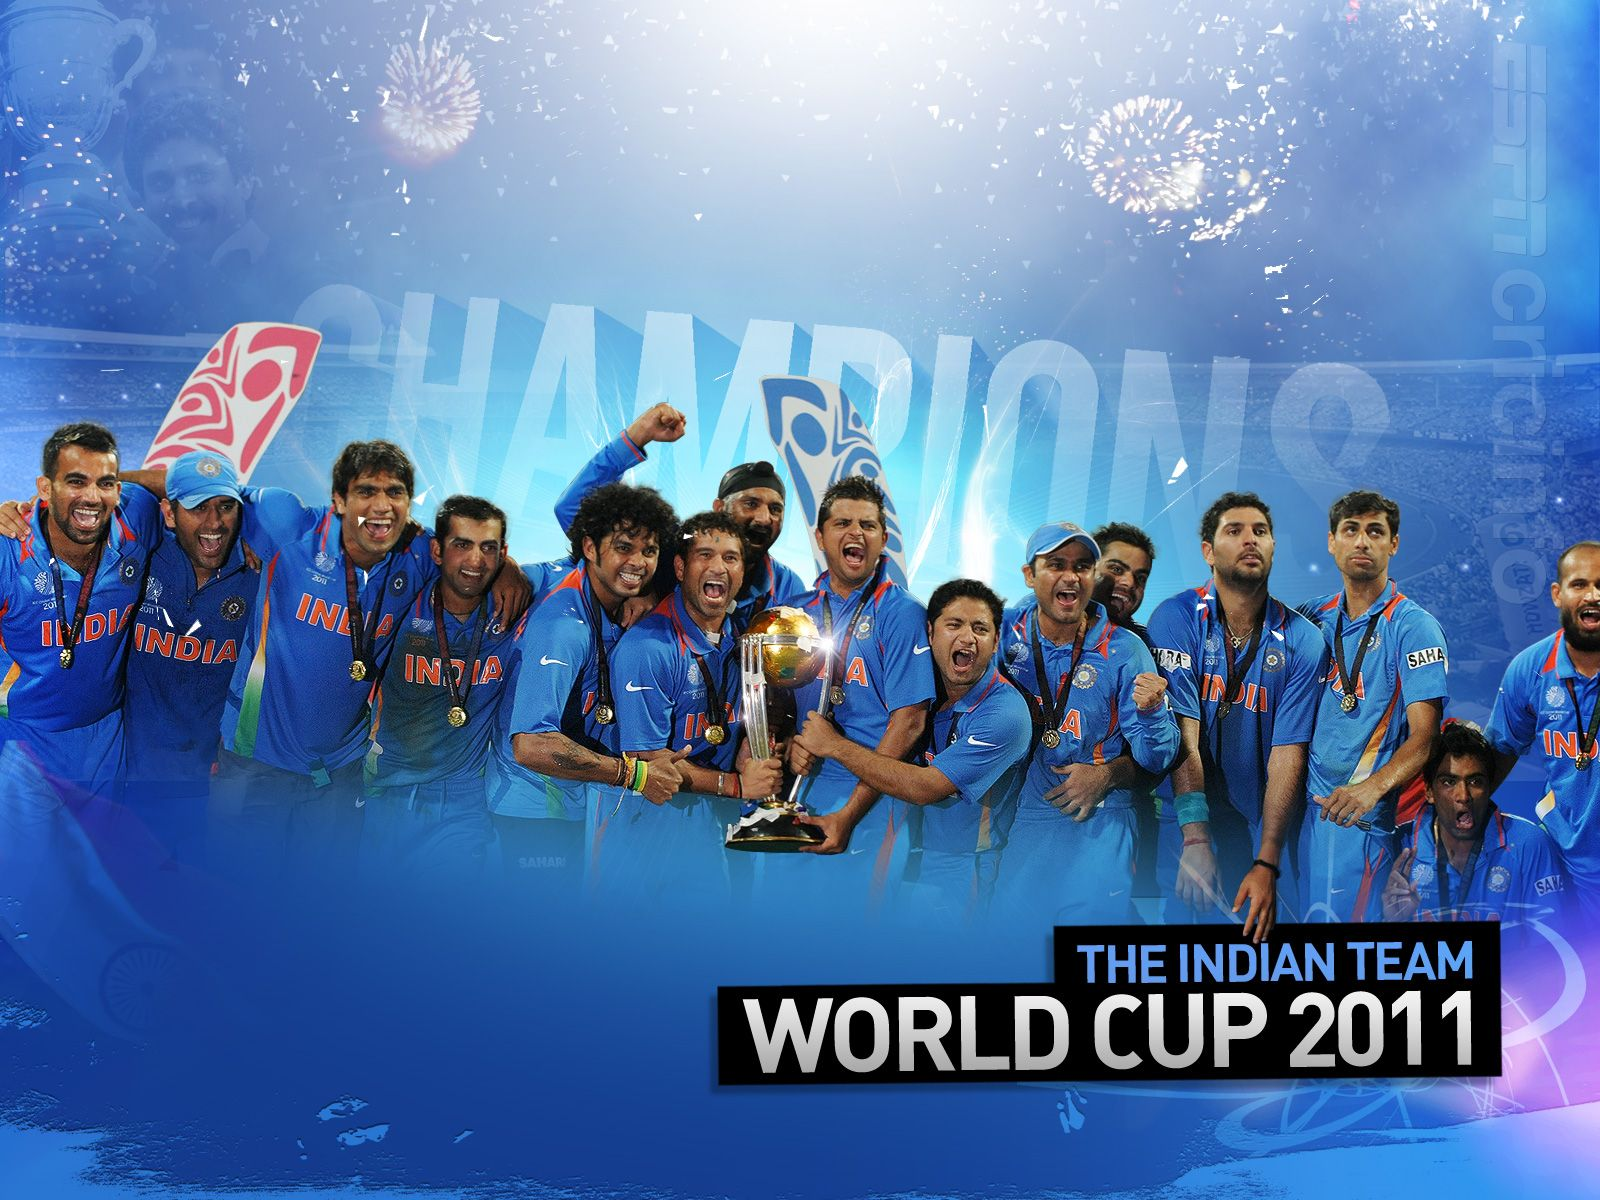 Team India D Team Wallpaper Cricket Wallpapers Cricket World Cup